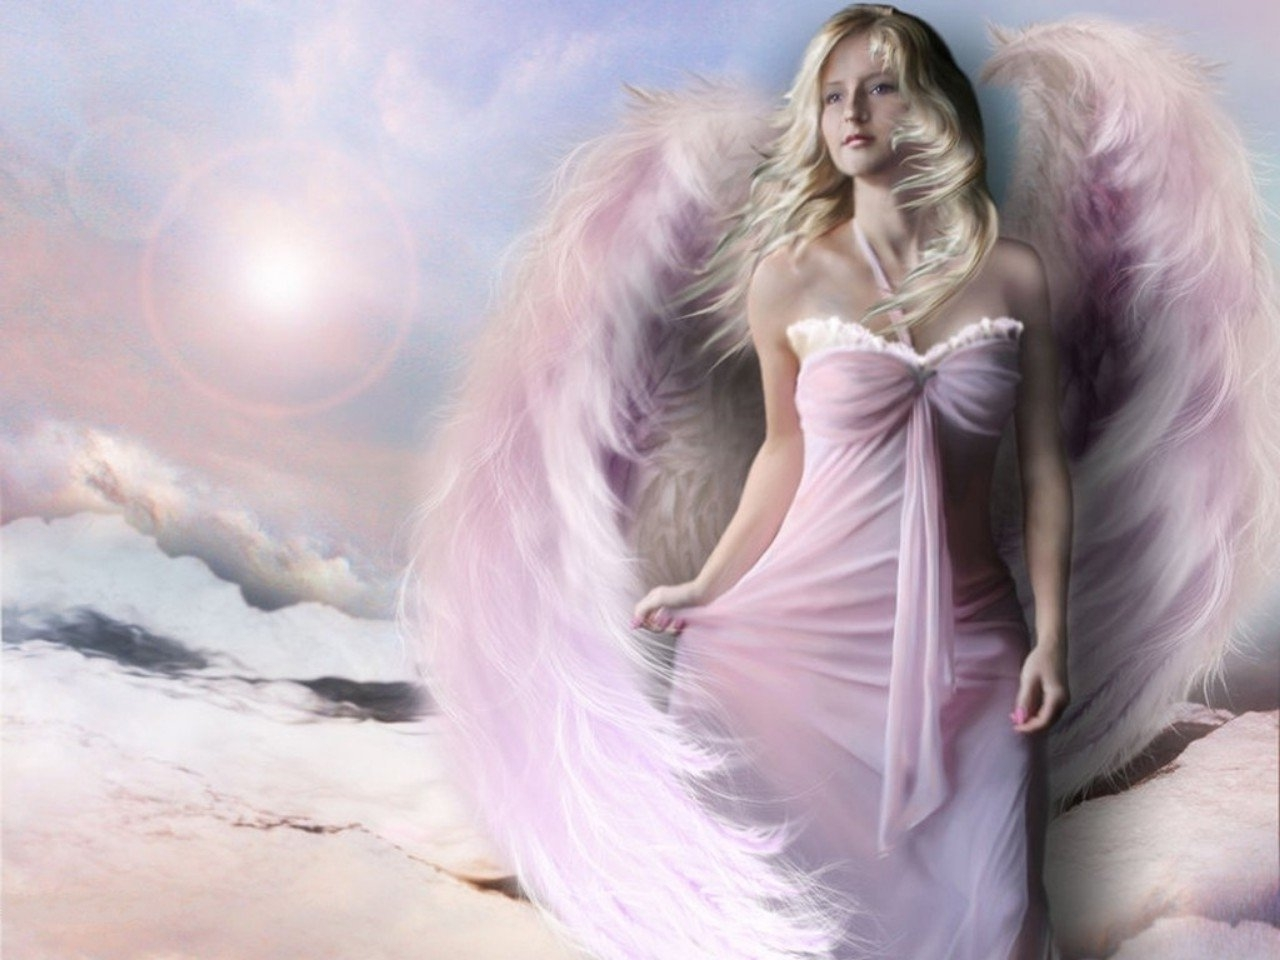 Angel Wallpaper Download Download Wallpaper DaWallpaperz 1280x960